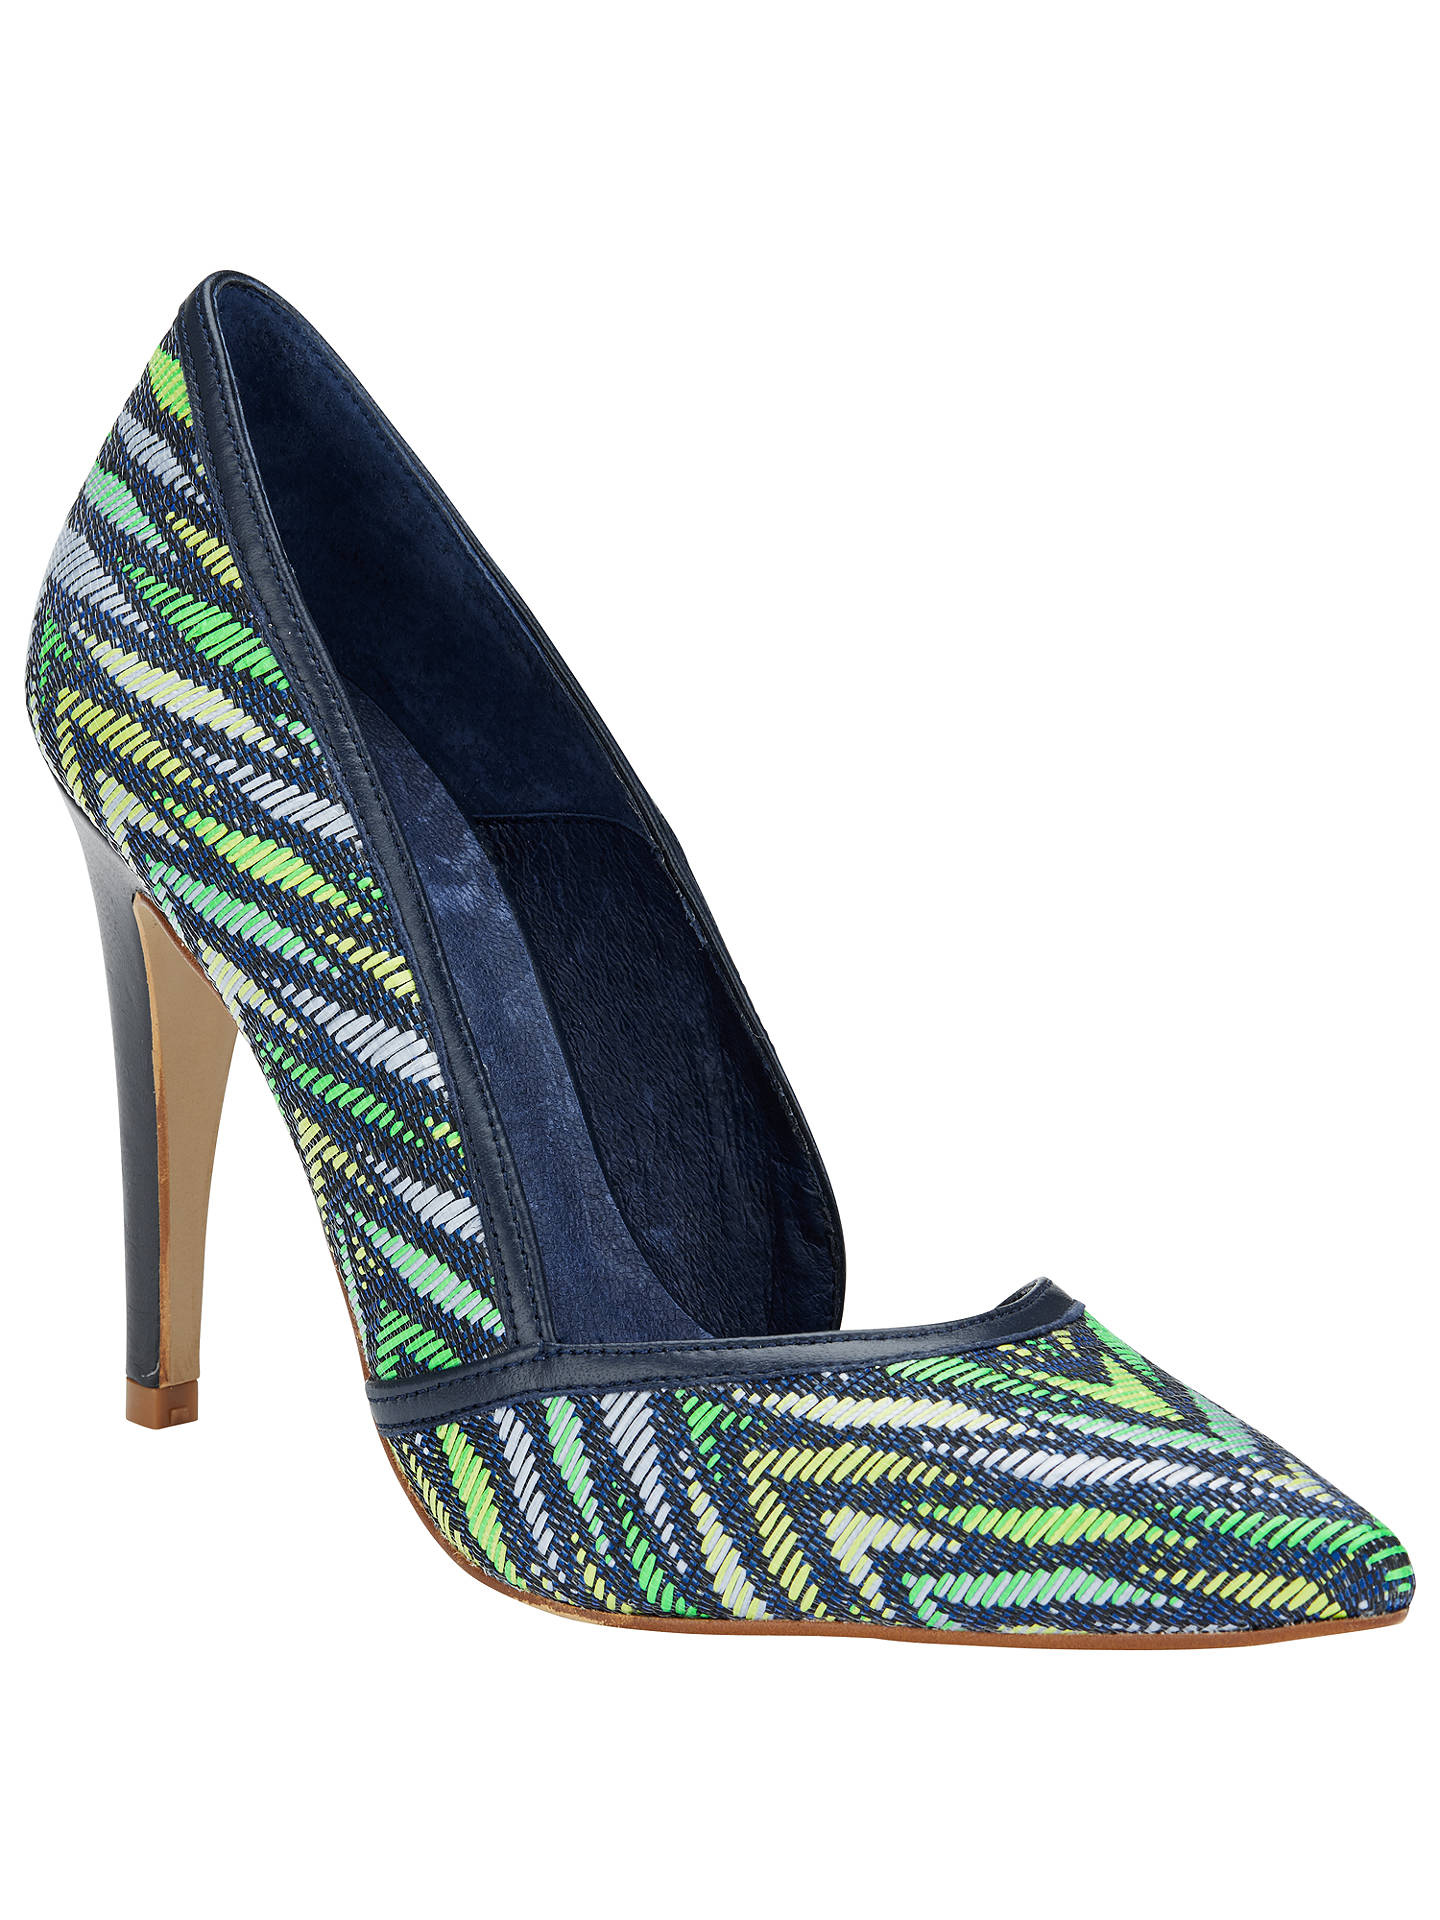 2019 year for women- Lewis John high heels latest collection footwear